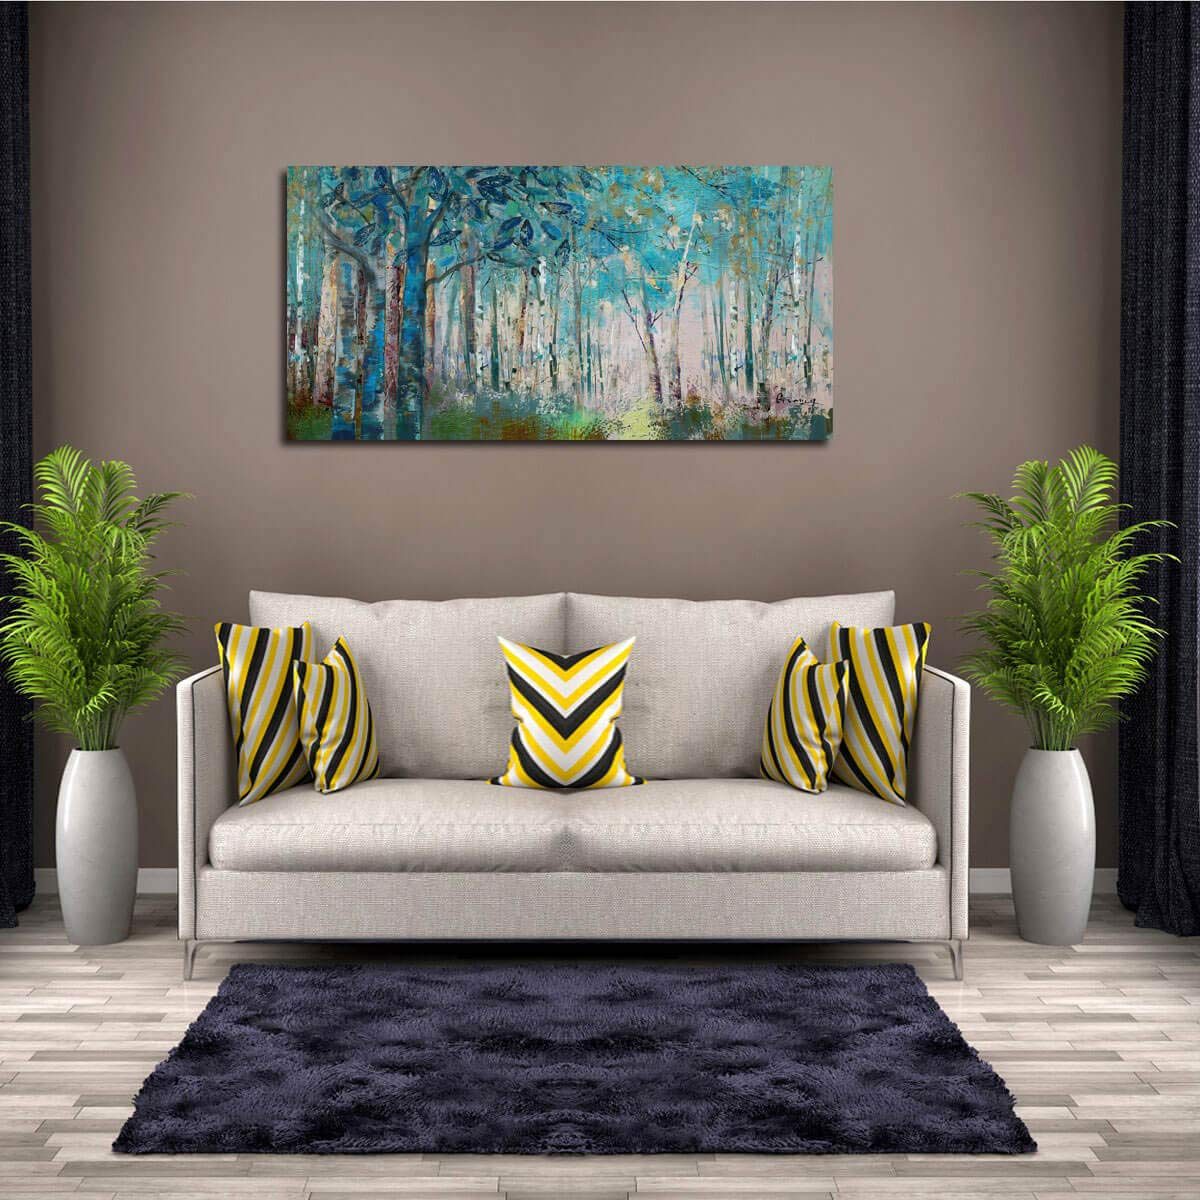 Ardemy Canvas Wall Art Blue Tree Forest Landscape Picture Prints, Modern Birch Trees Nature Woods Abstract Painting Artwork Extra Large Framed for Home Office Living Room Bedroom Decor, 60 x30